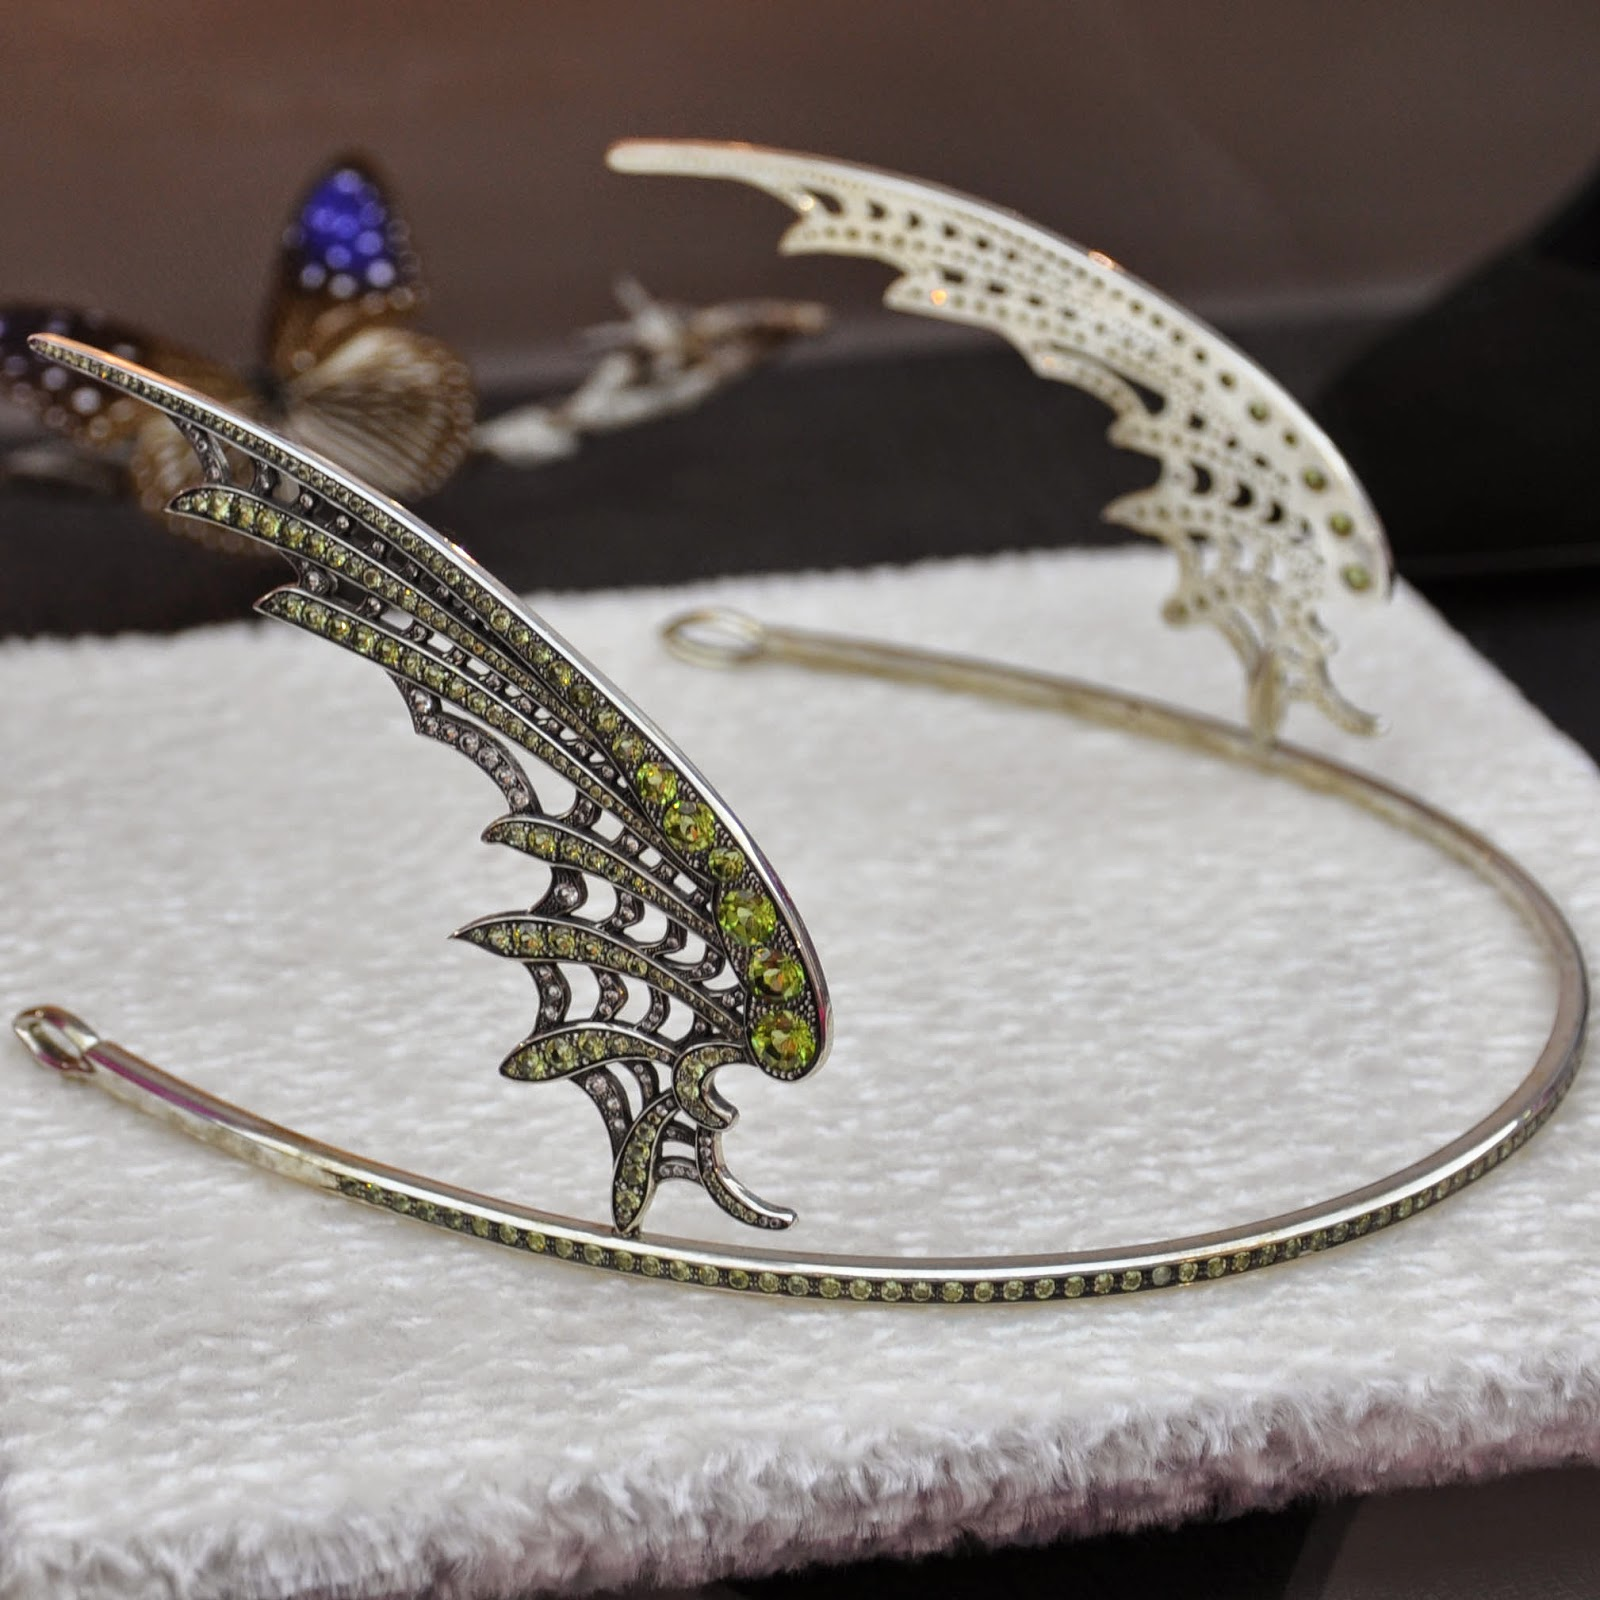 A tiara symbolising one of the forecasted jewellery trends 'The Romantic'